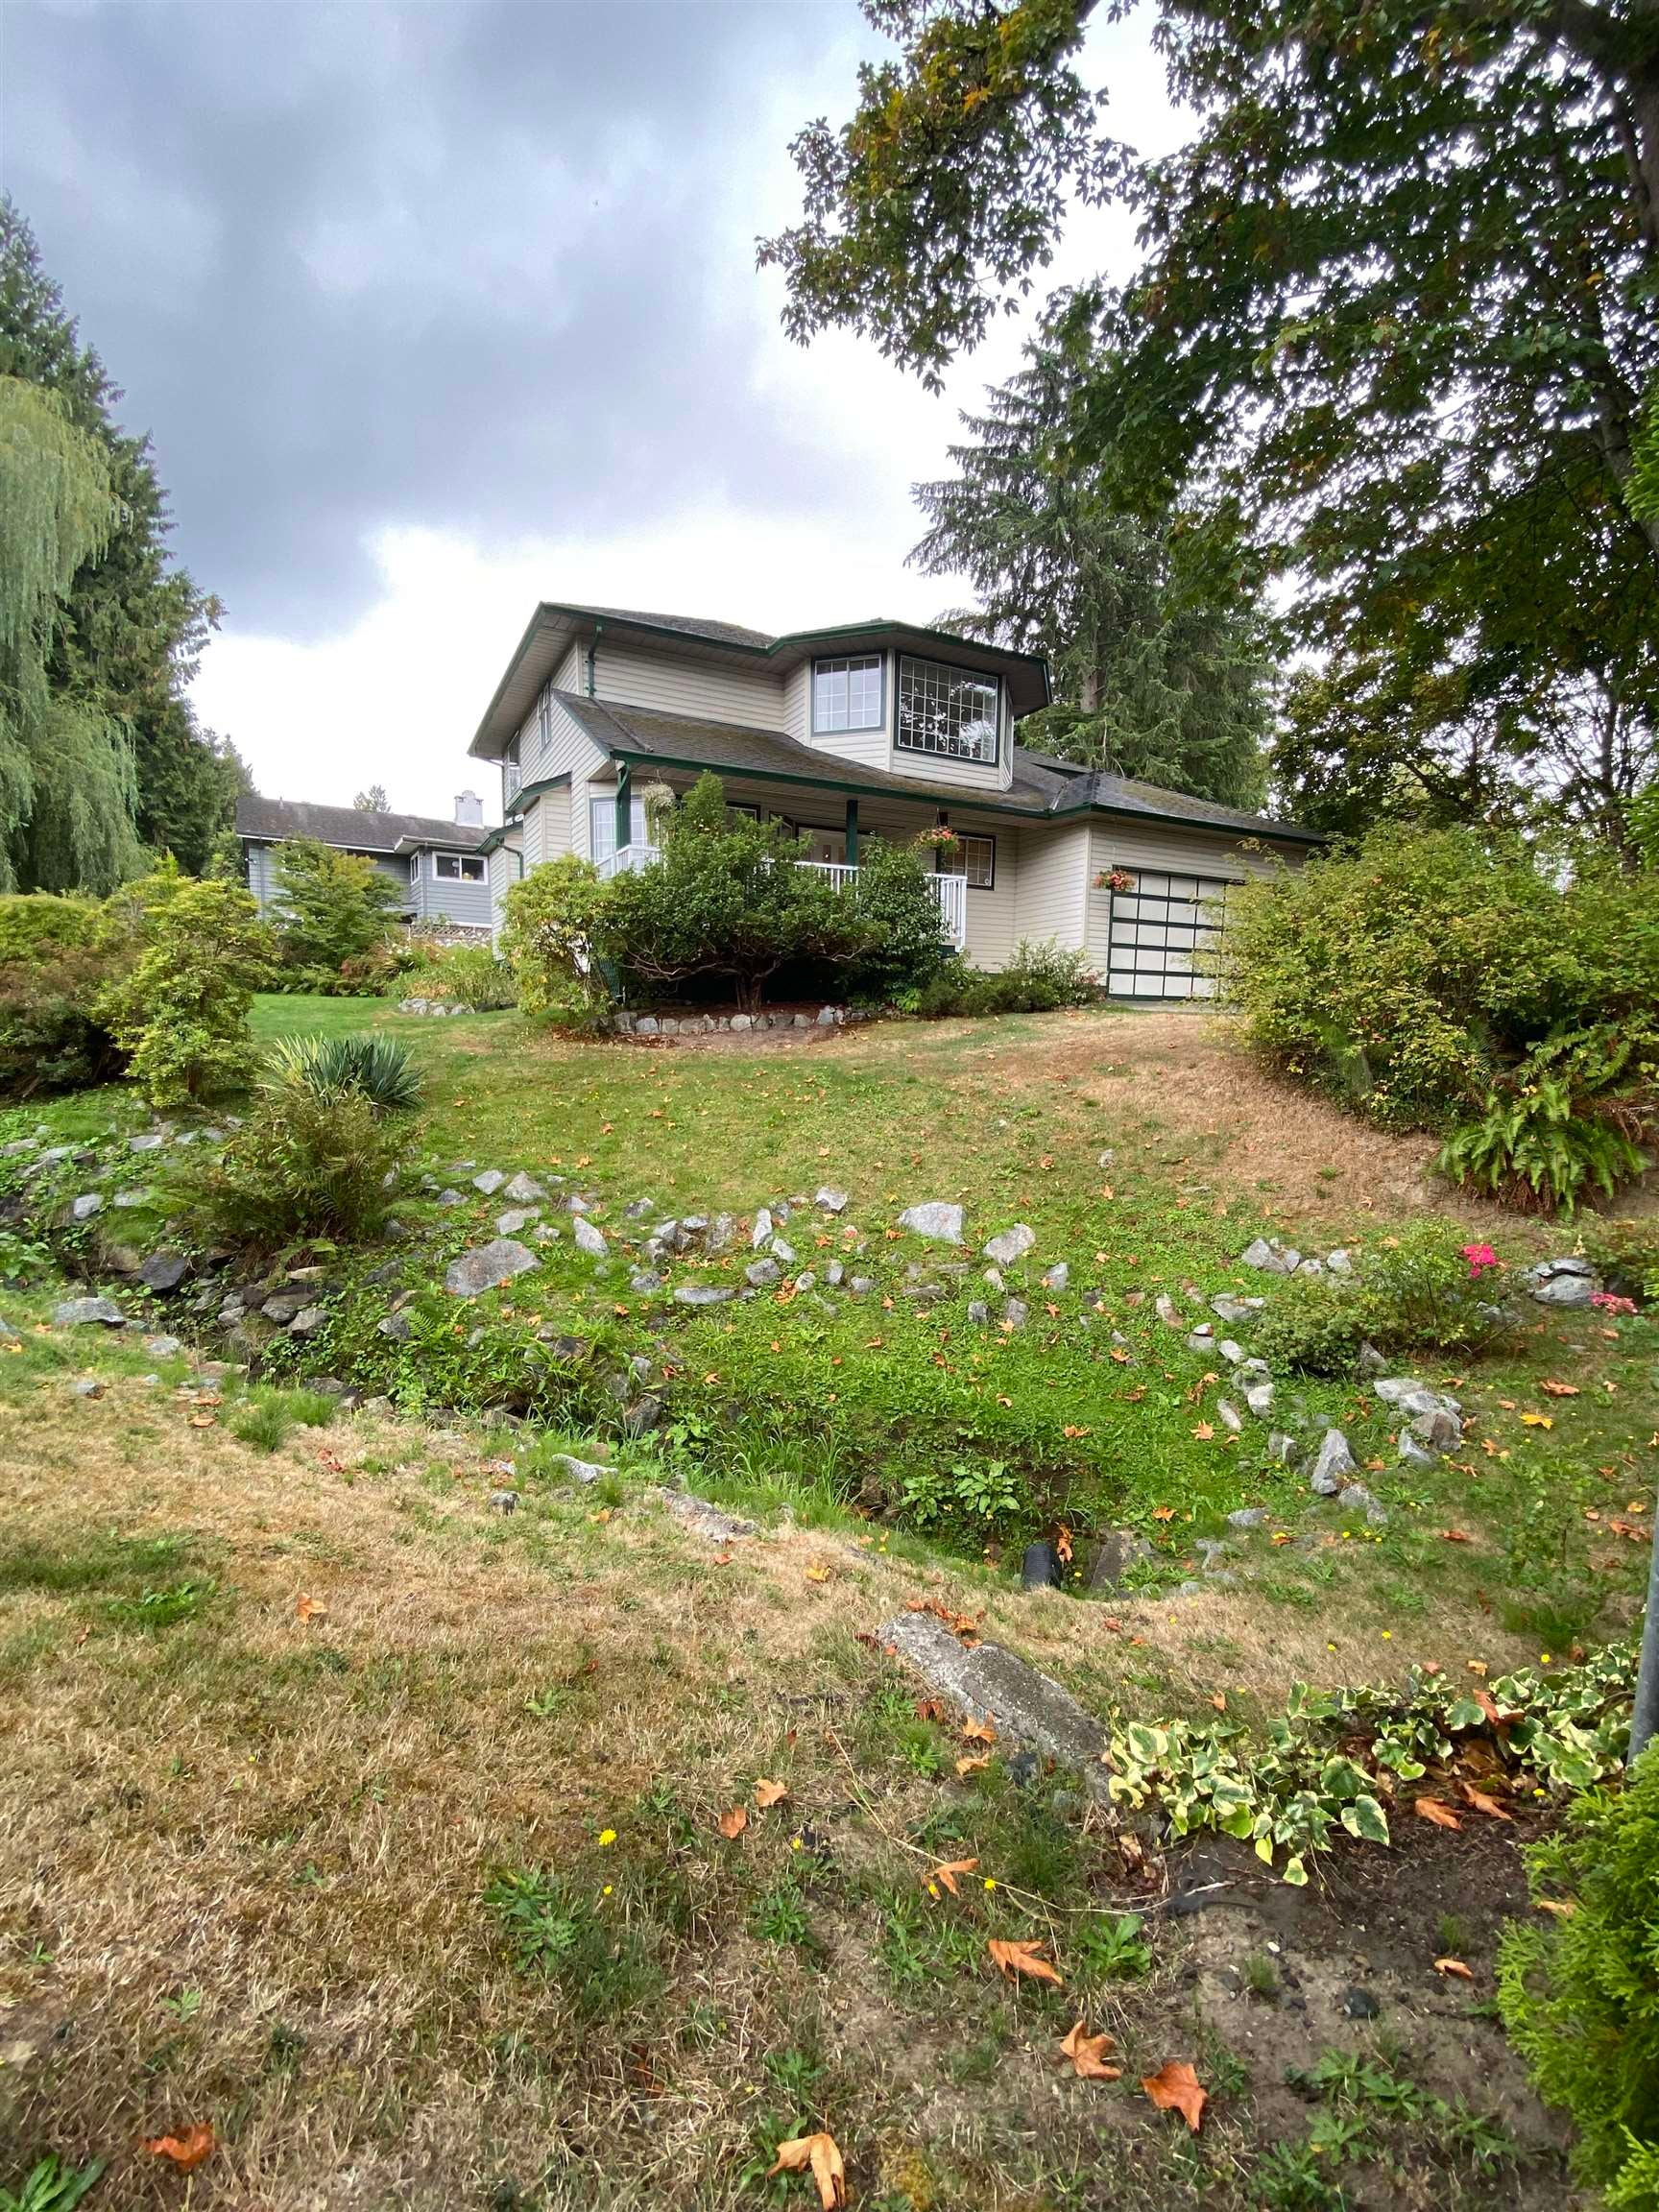 19950 48A AVENUE - Langley City House/Single Family for sale, 4 Bedrooms (R2615832) - #1